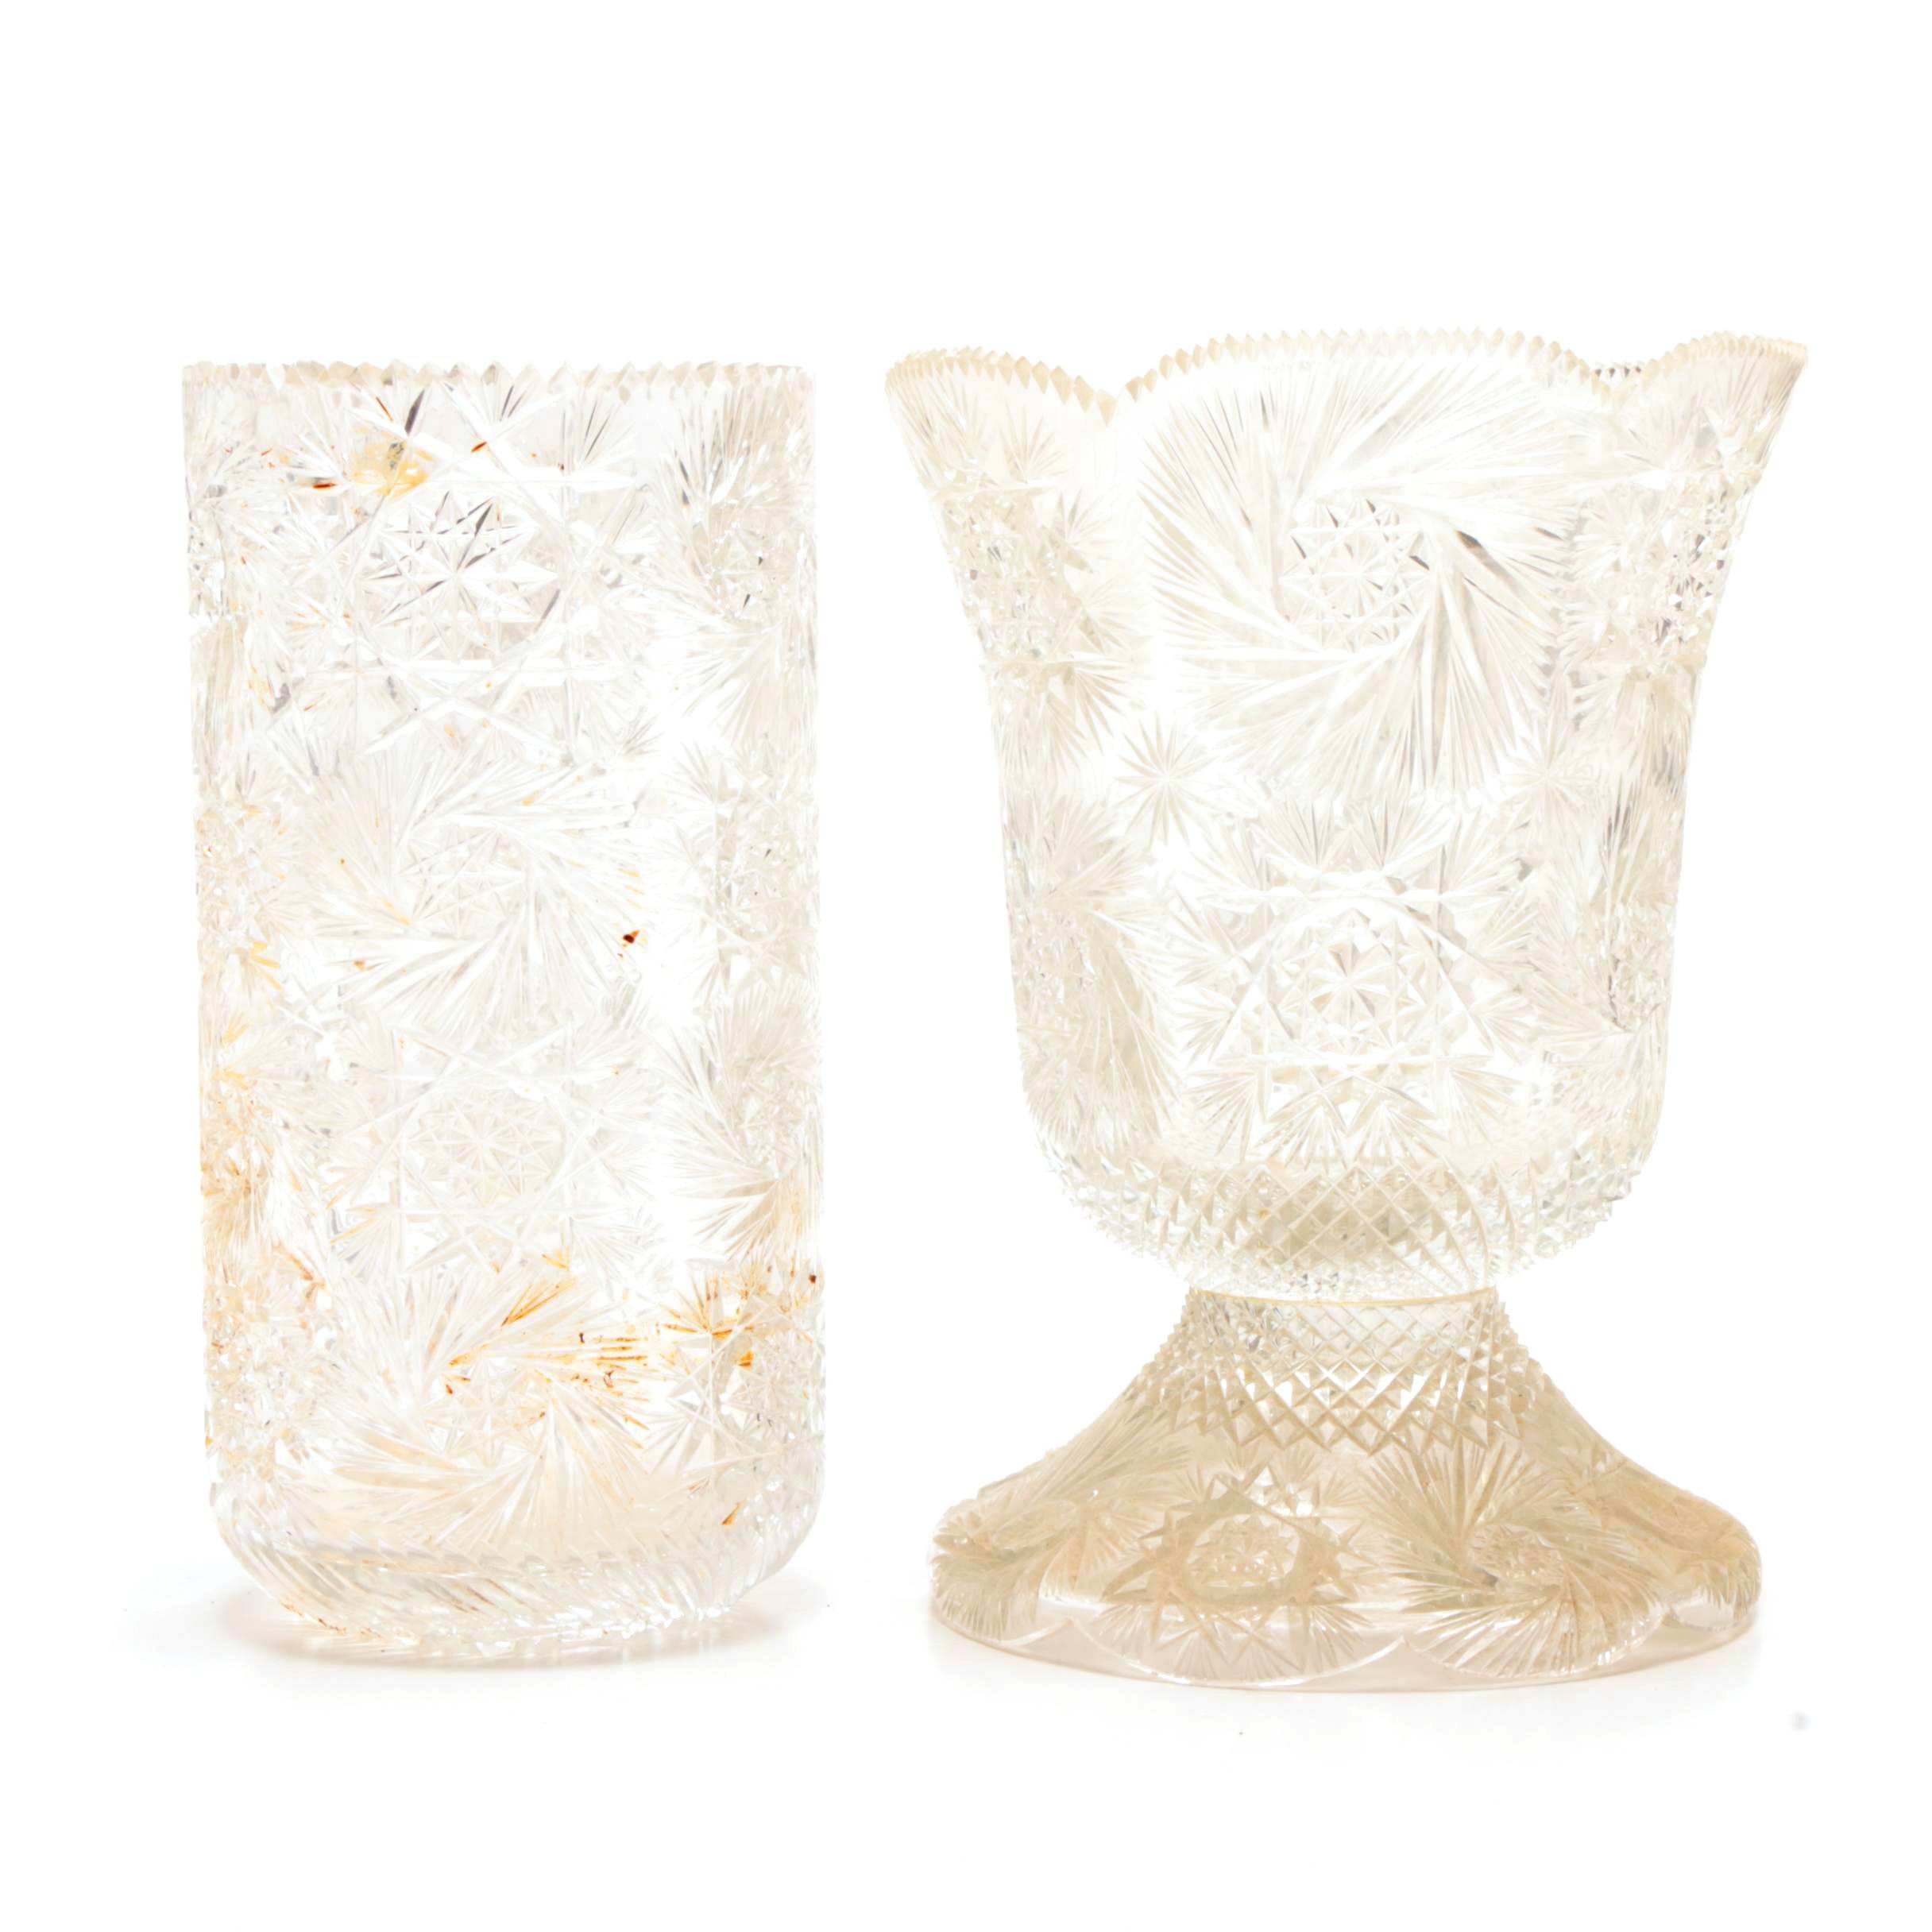 Early 20th Century American Brilliant Cut Glass Vases